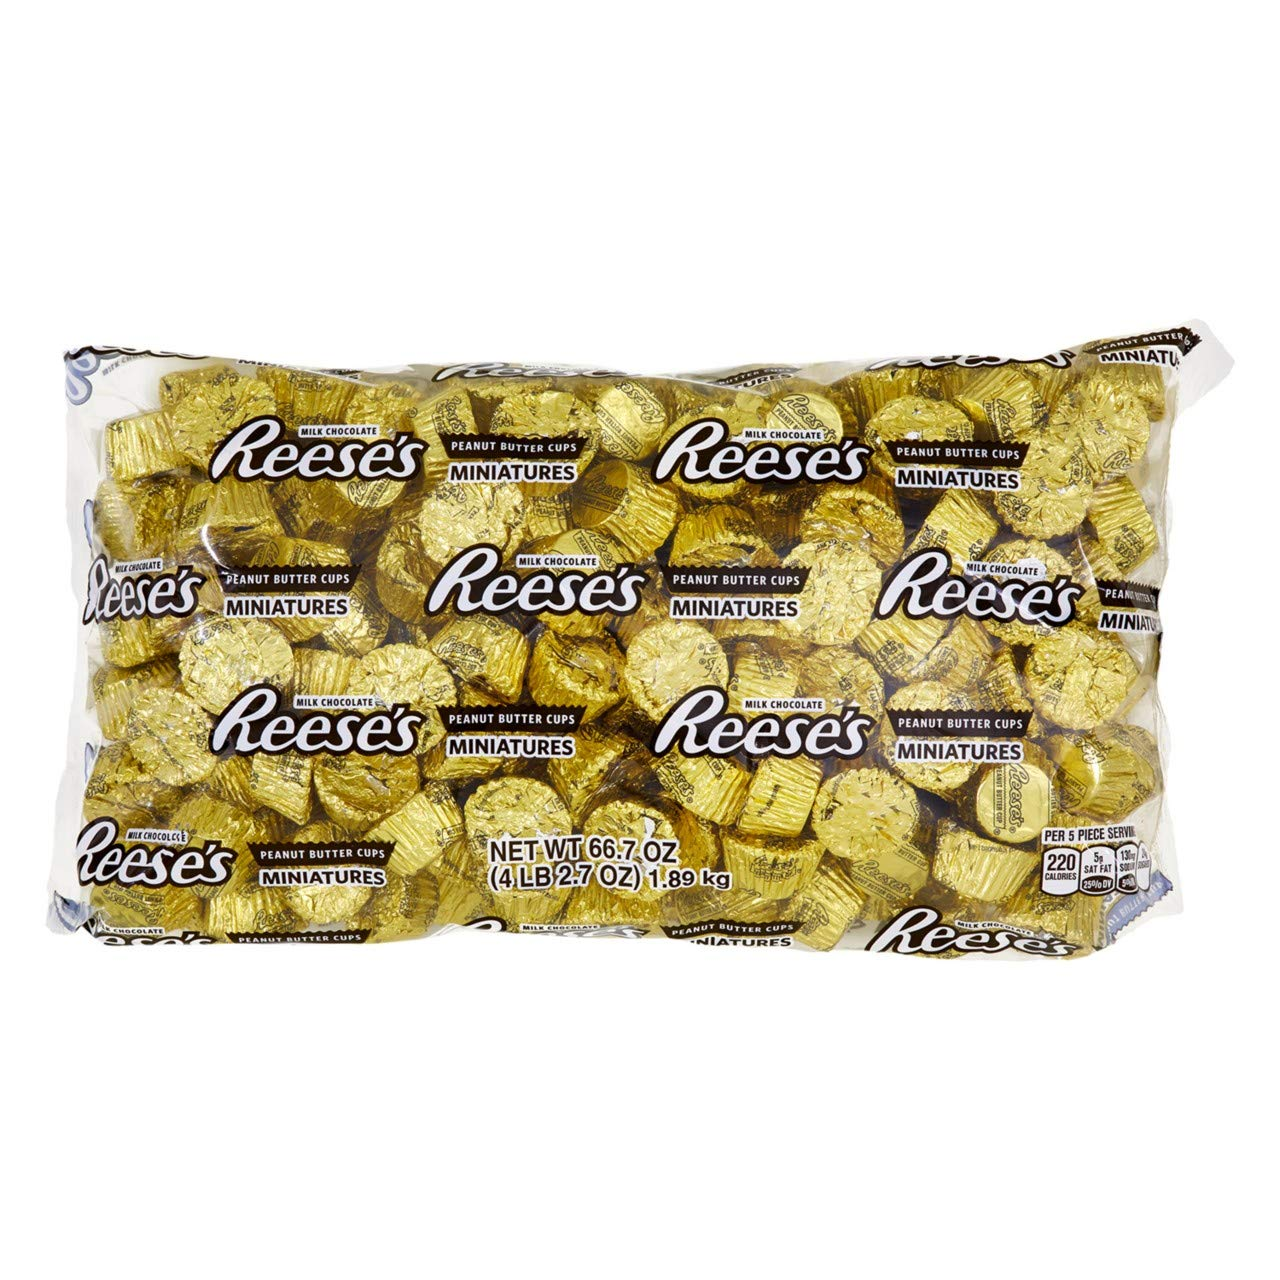 REESE'S Peanut Butter Cup Miniatures, Gold Halloween Chocolate Candy, 66.7 Ounce Bulk Bag (About 205 Pieces) by Reese's